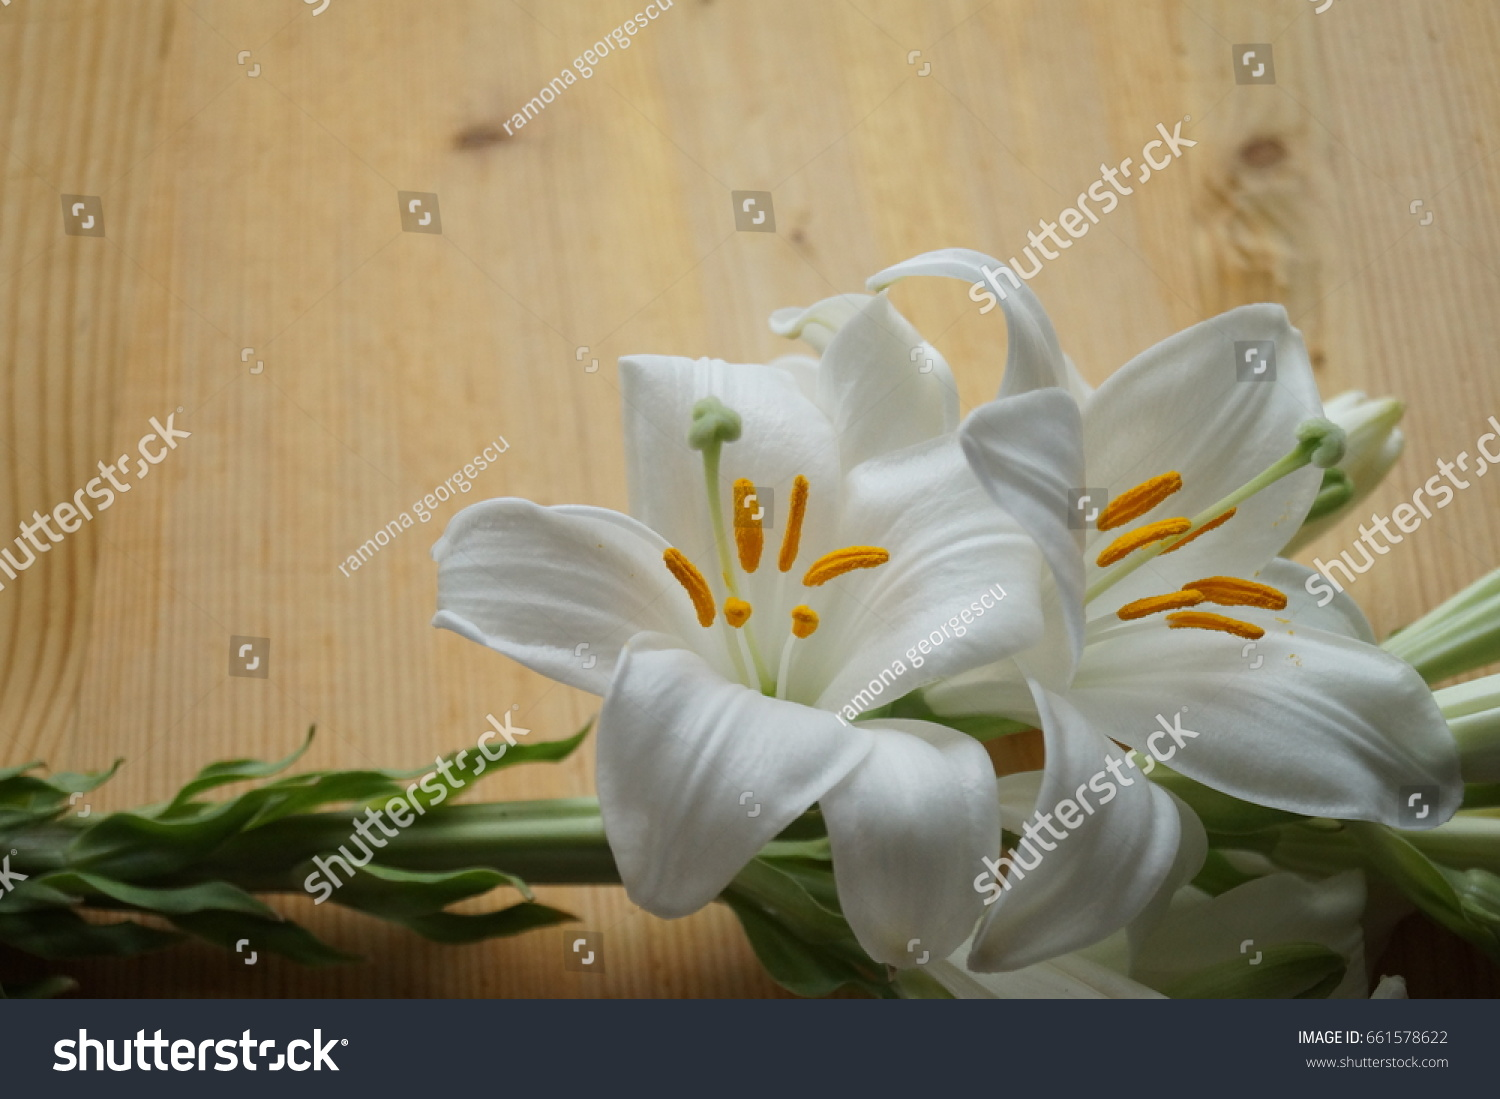 Madonna lily flower image collections flower wallpaper hd white madonna lily flower lilium candidum stock photo 661578622 white madonna lily flower lilium candidum izmirmasajfo izmirmasajfo Gallery